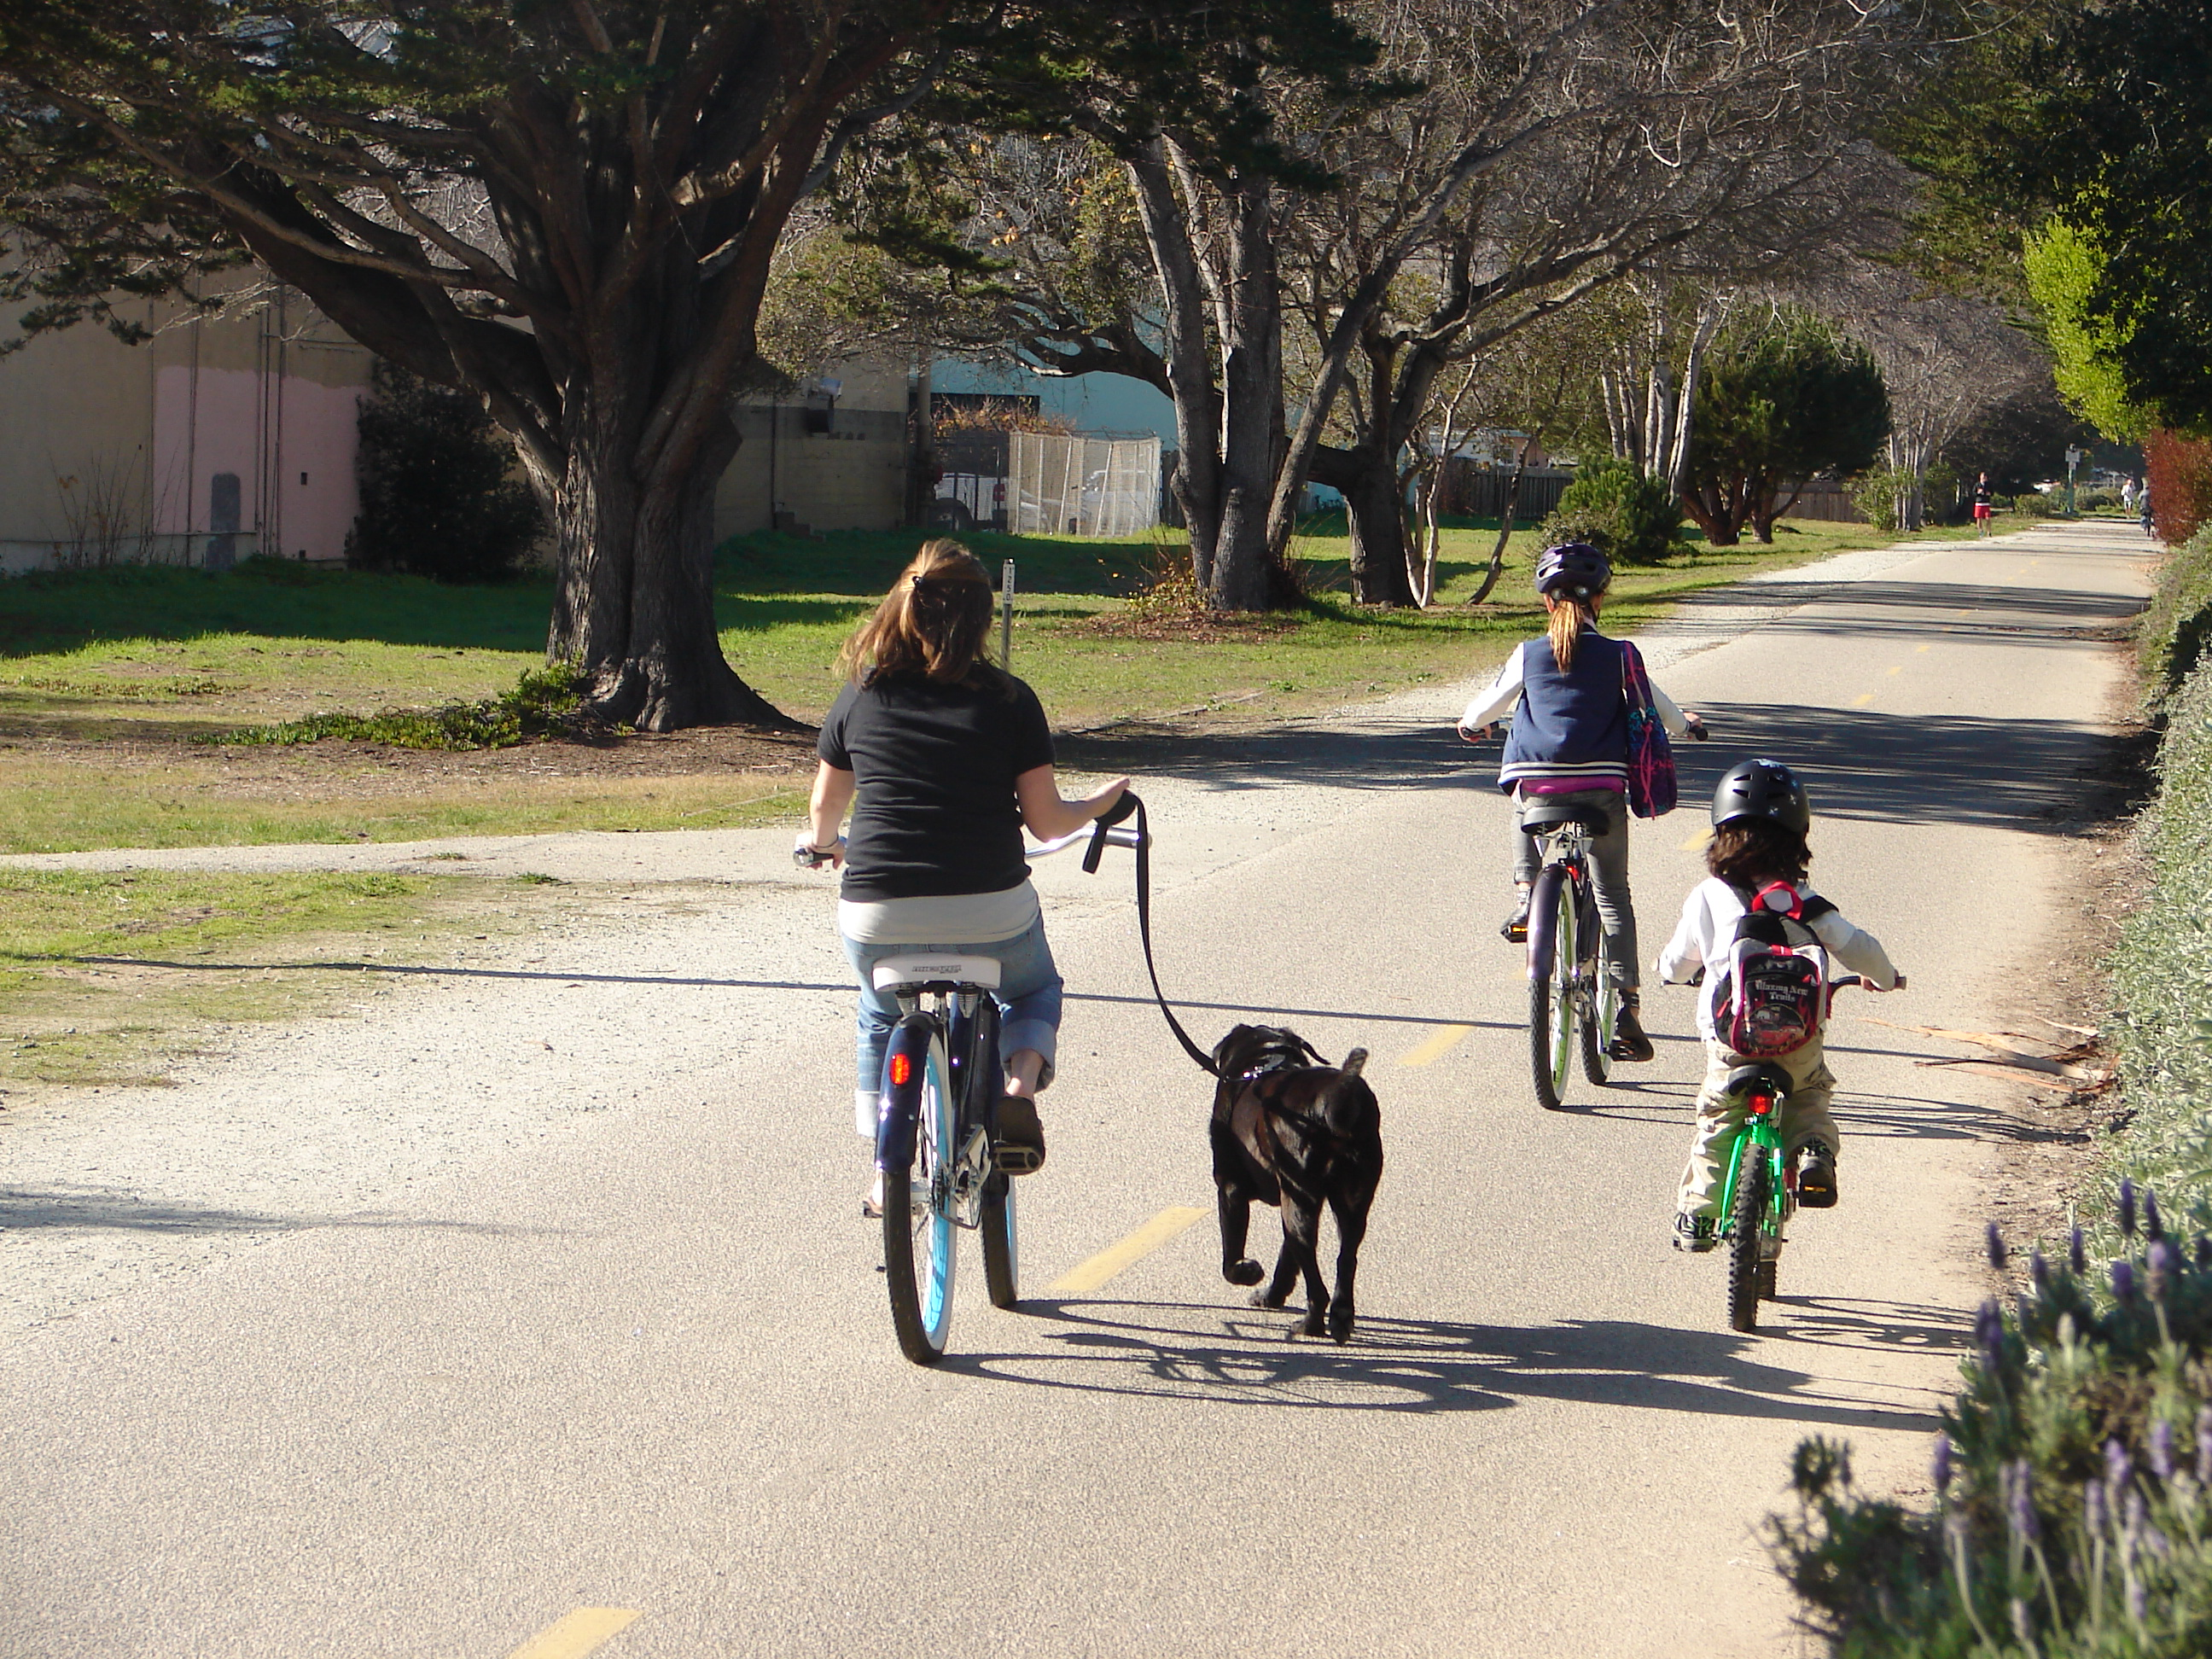 Biking to school with the dog in tow can make it a little tricky to follow ...